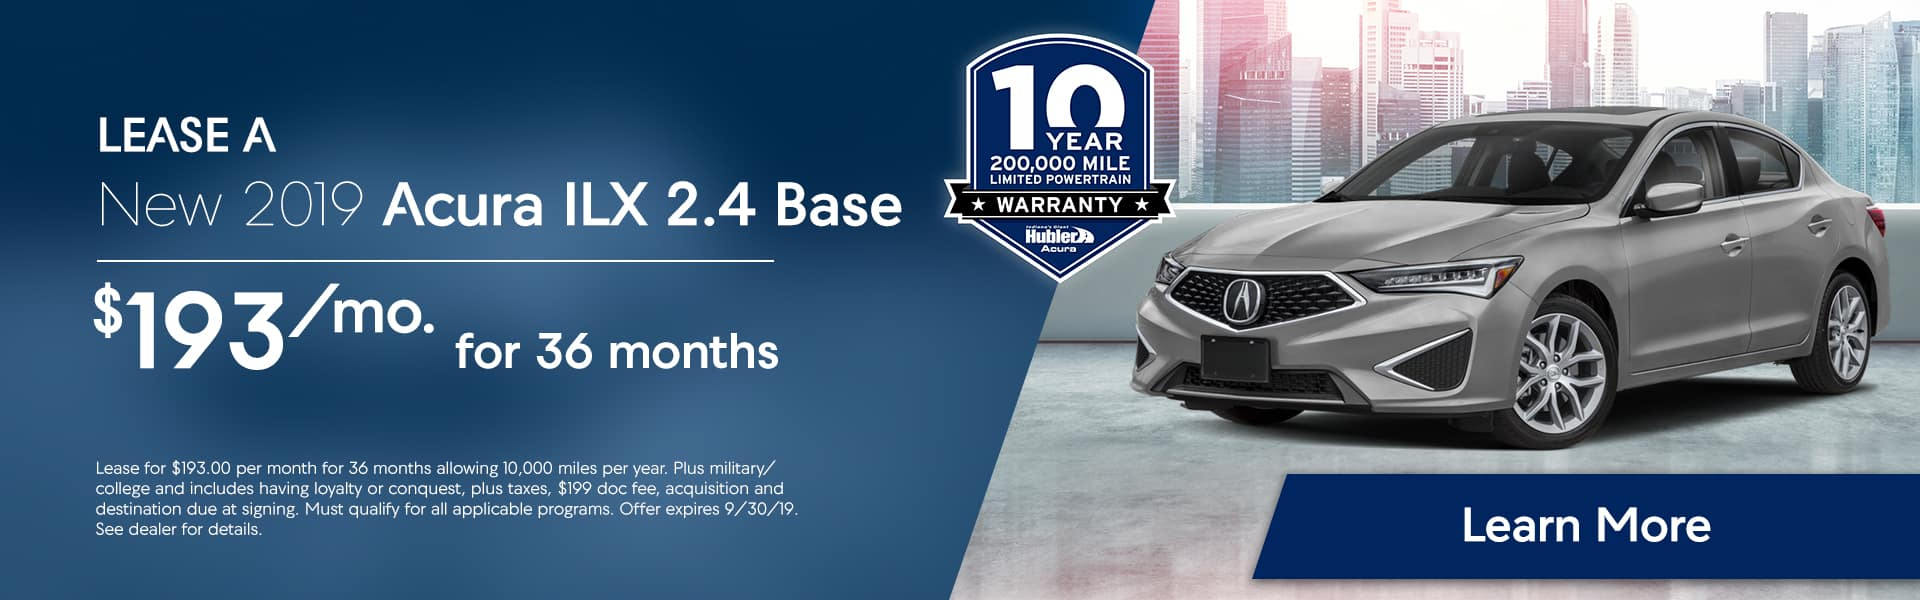 ILX Offer at Hubler Acura